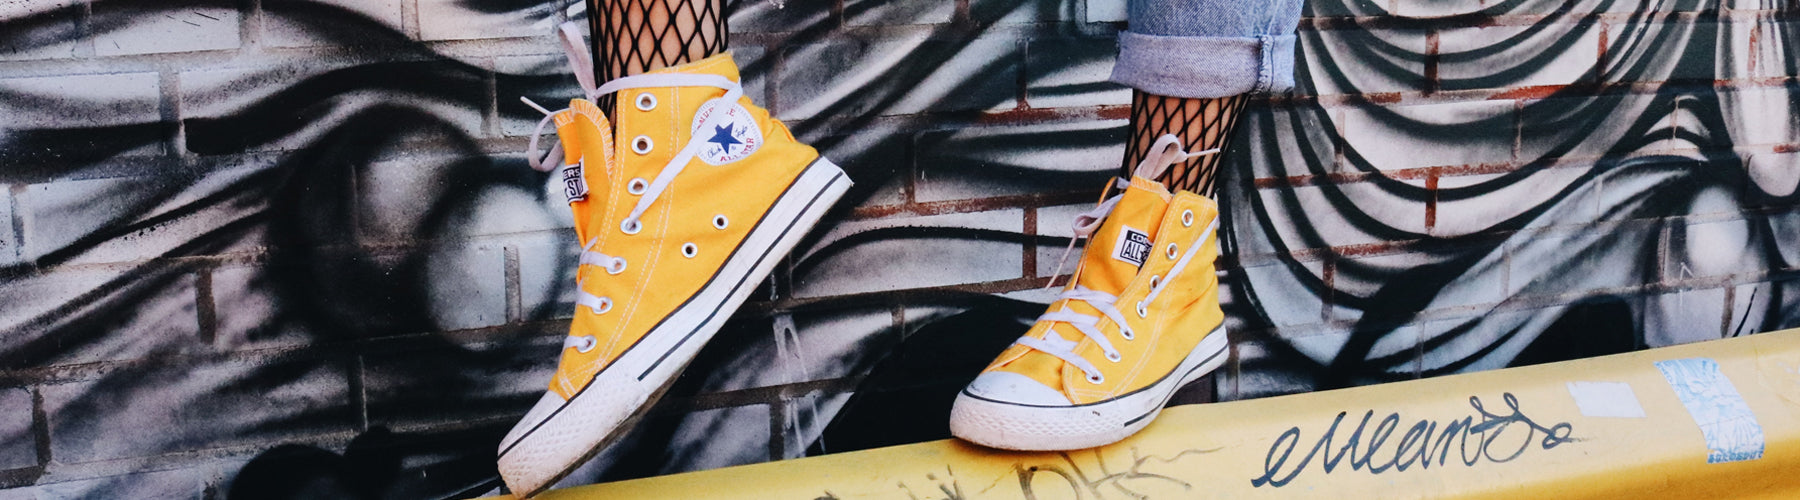 Converse Shoes for FAQ Page: photo by: Danny G on Unsplash